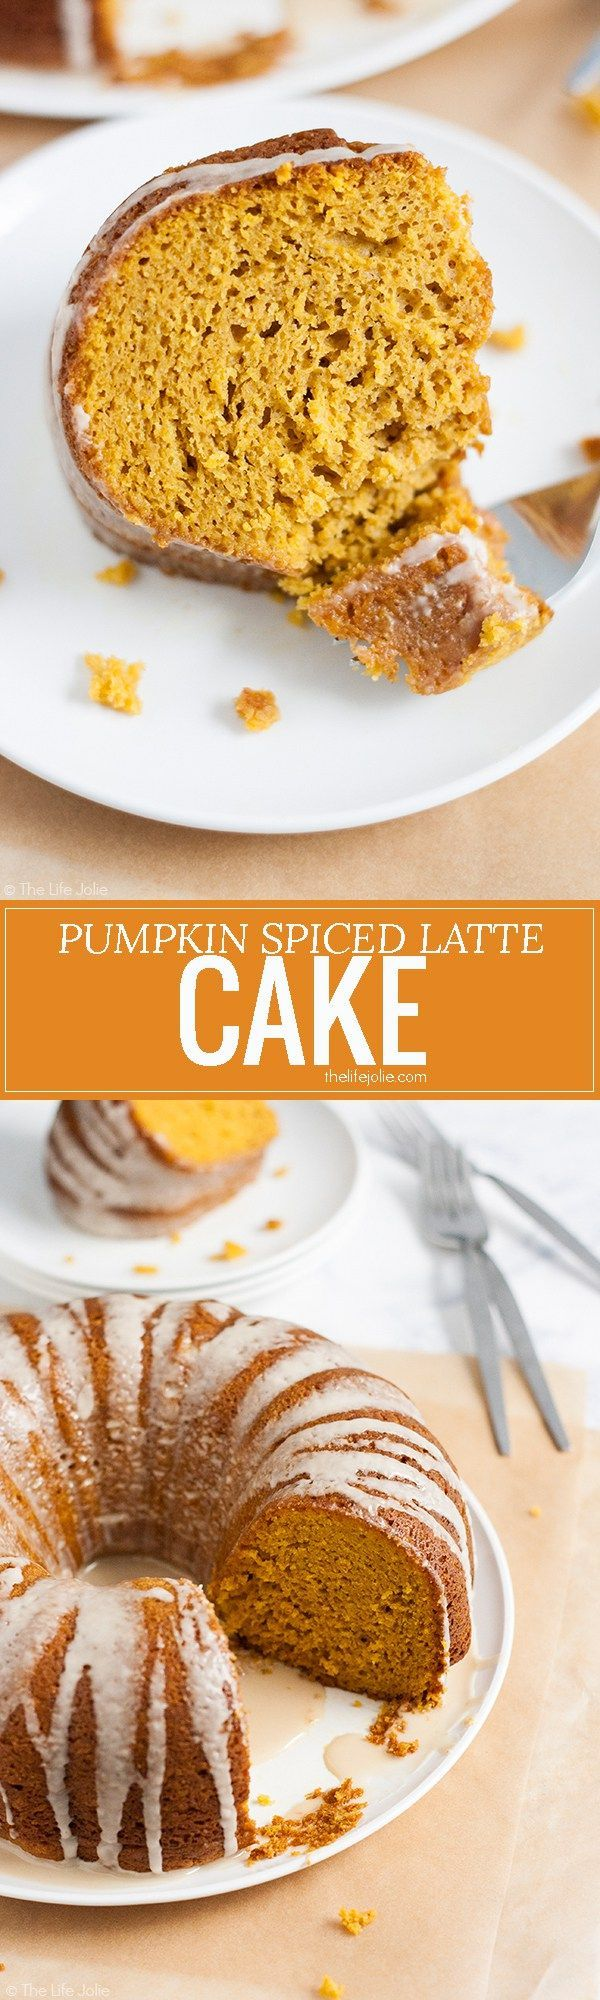 This Pumpkin Spice Latte Cake recipe is the absolute best! Delicious pumpkin spice and subtle coffee flavor combine into the most moist, addictive cake you'll find. Best of all, it's a cake mix hack so it's super easy to make (and your guests will never k